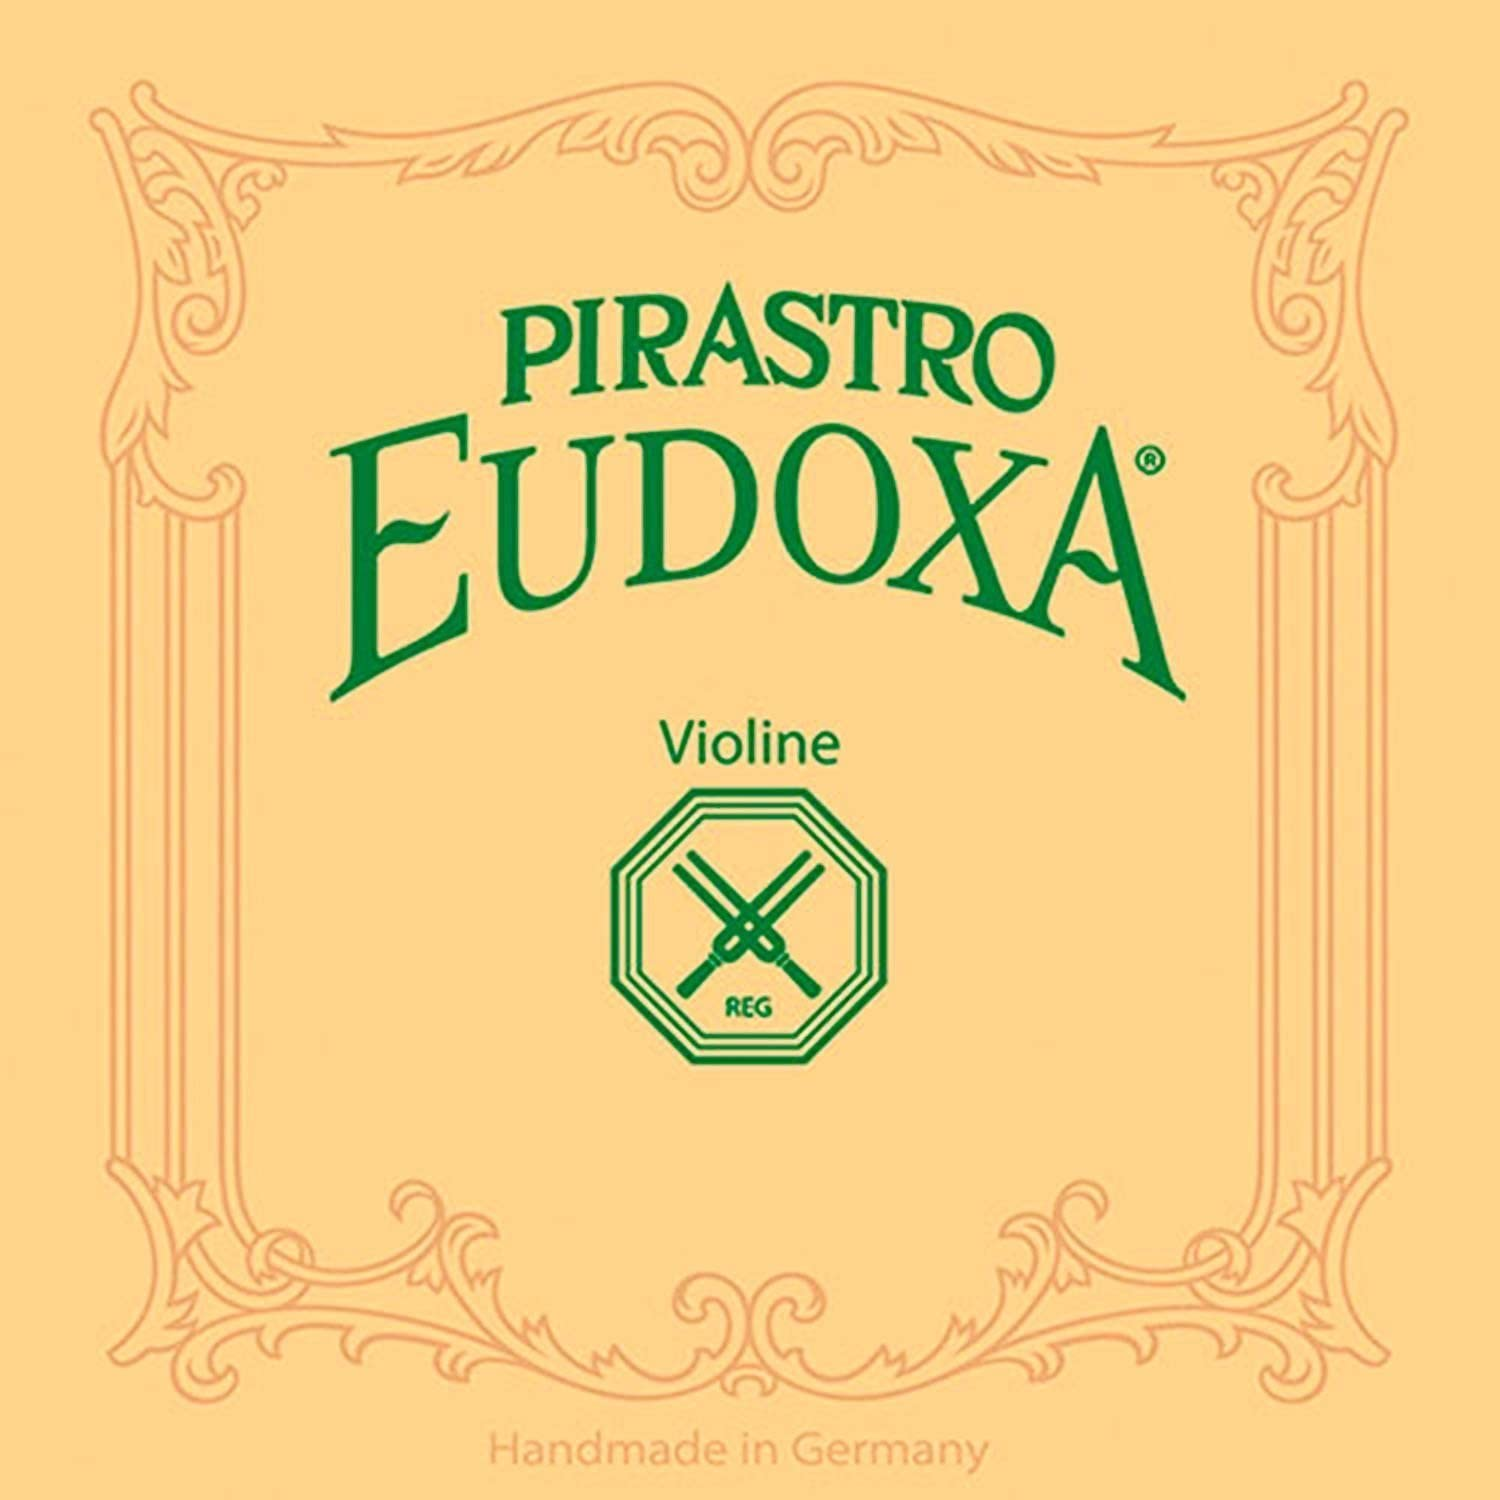 Traditional Replacement Accessory Premium Strings for Professional and Advanced Student Violin Players Pirastro Violin String Eudoxa Set Medium Handmade Wound Covered Gut Strings